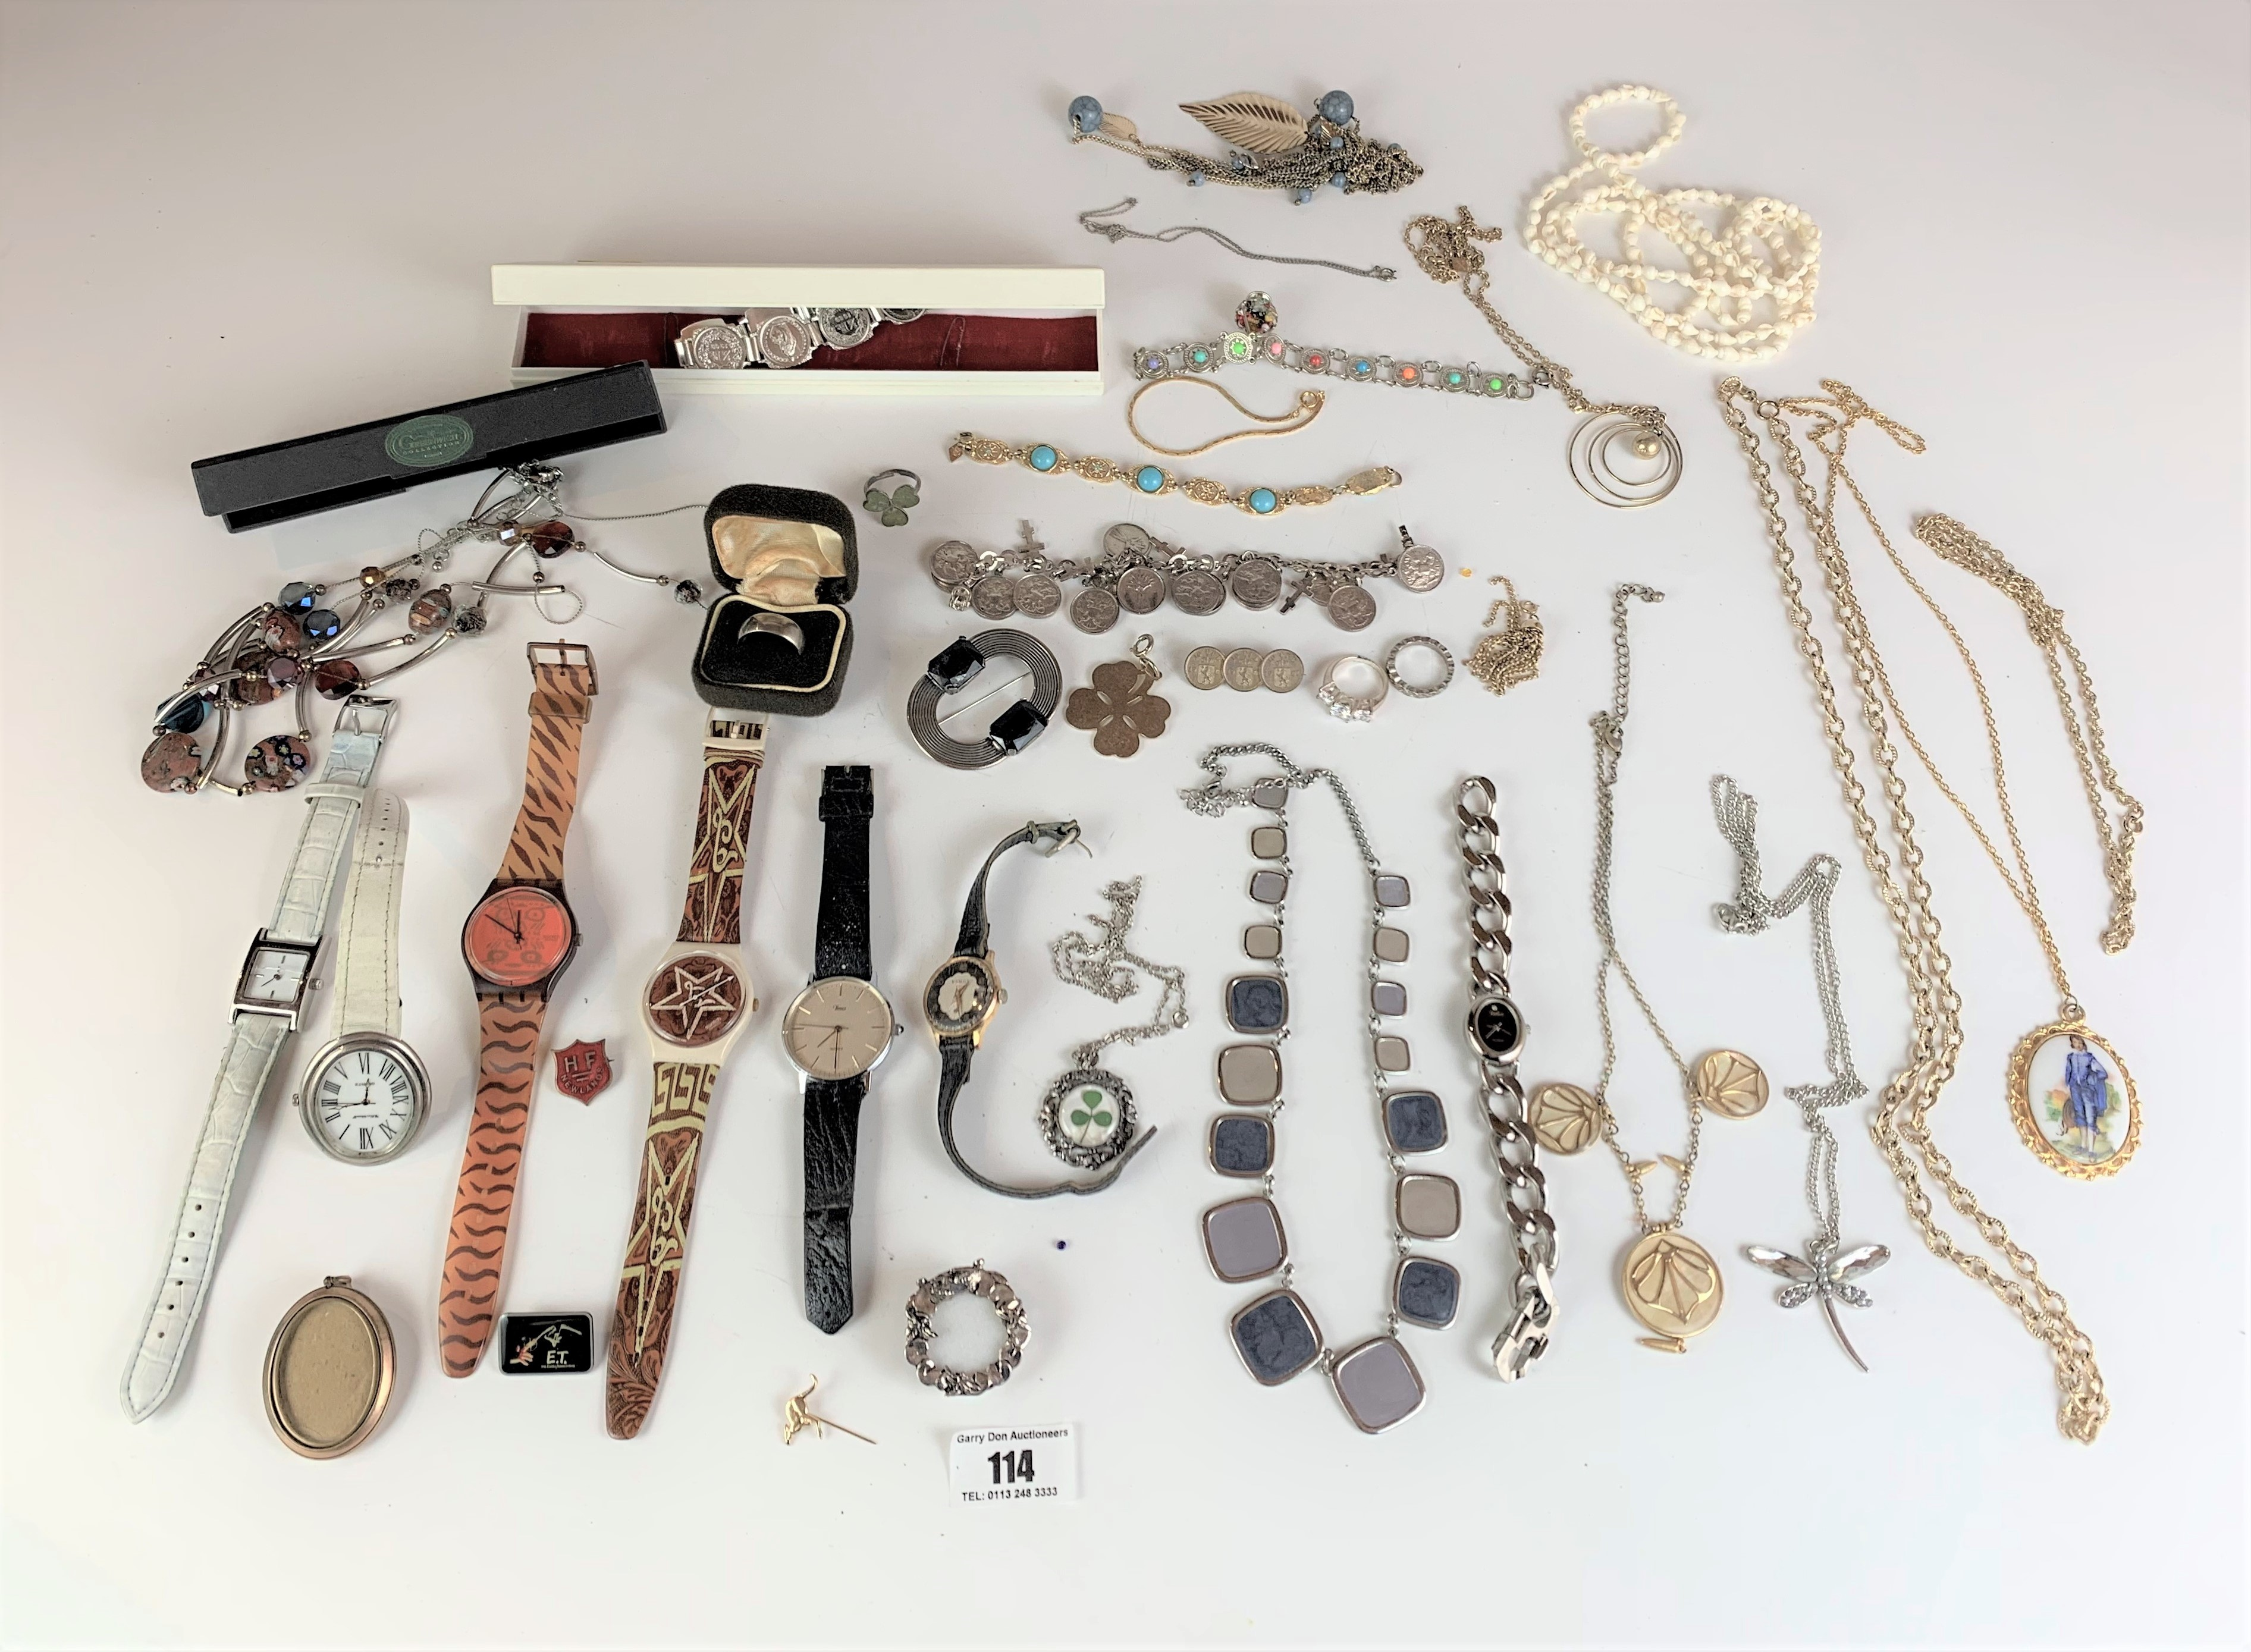 Large bag of assorted dress jewellery including watches, necklaces, bracelets, brooches etc.